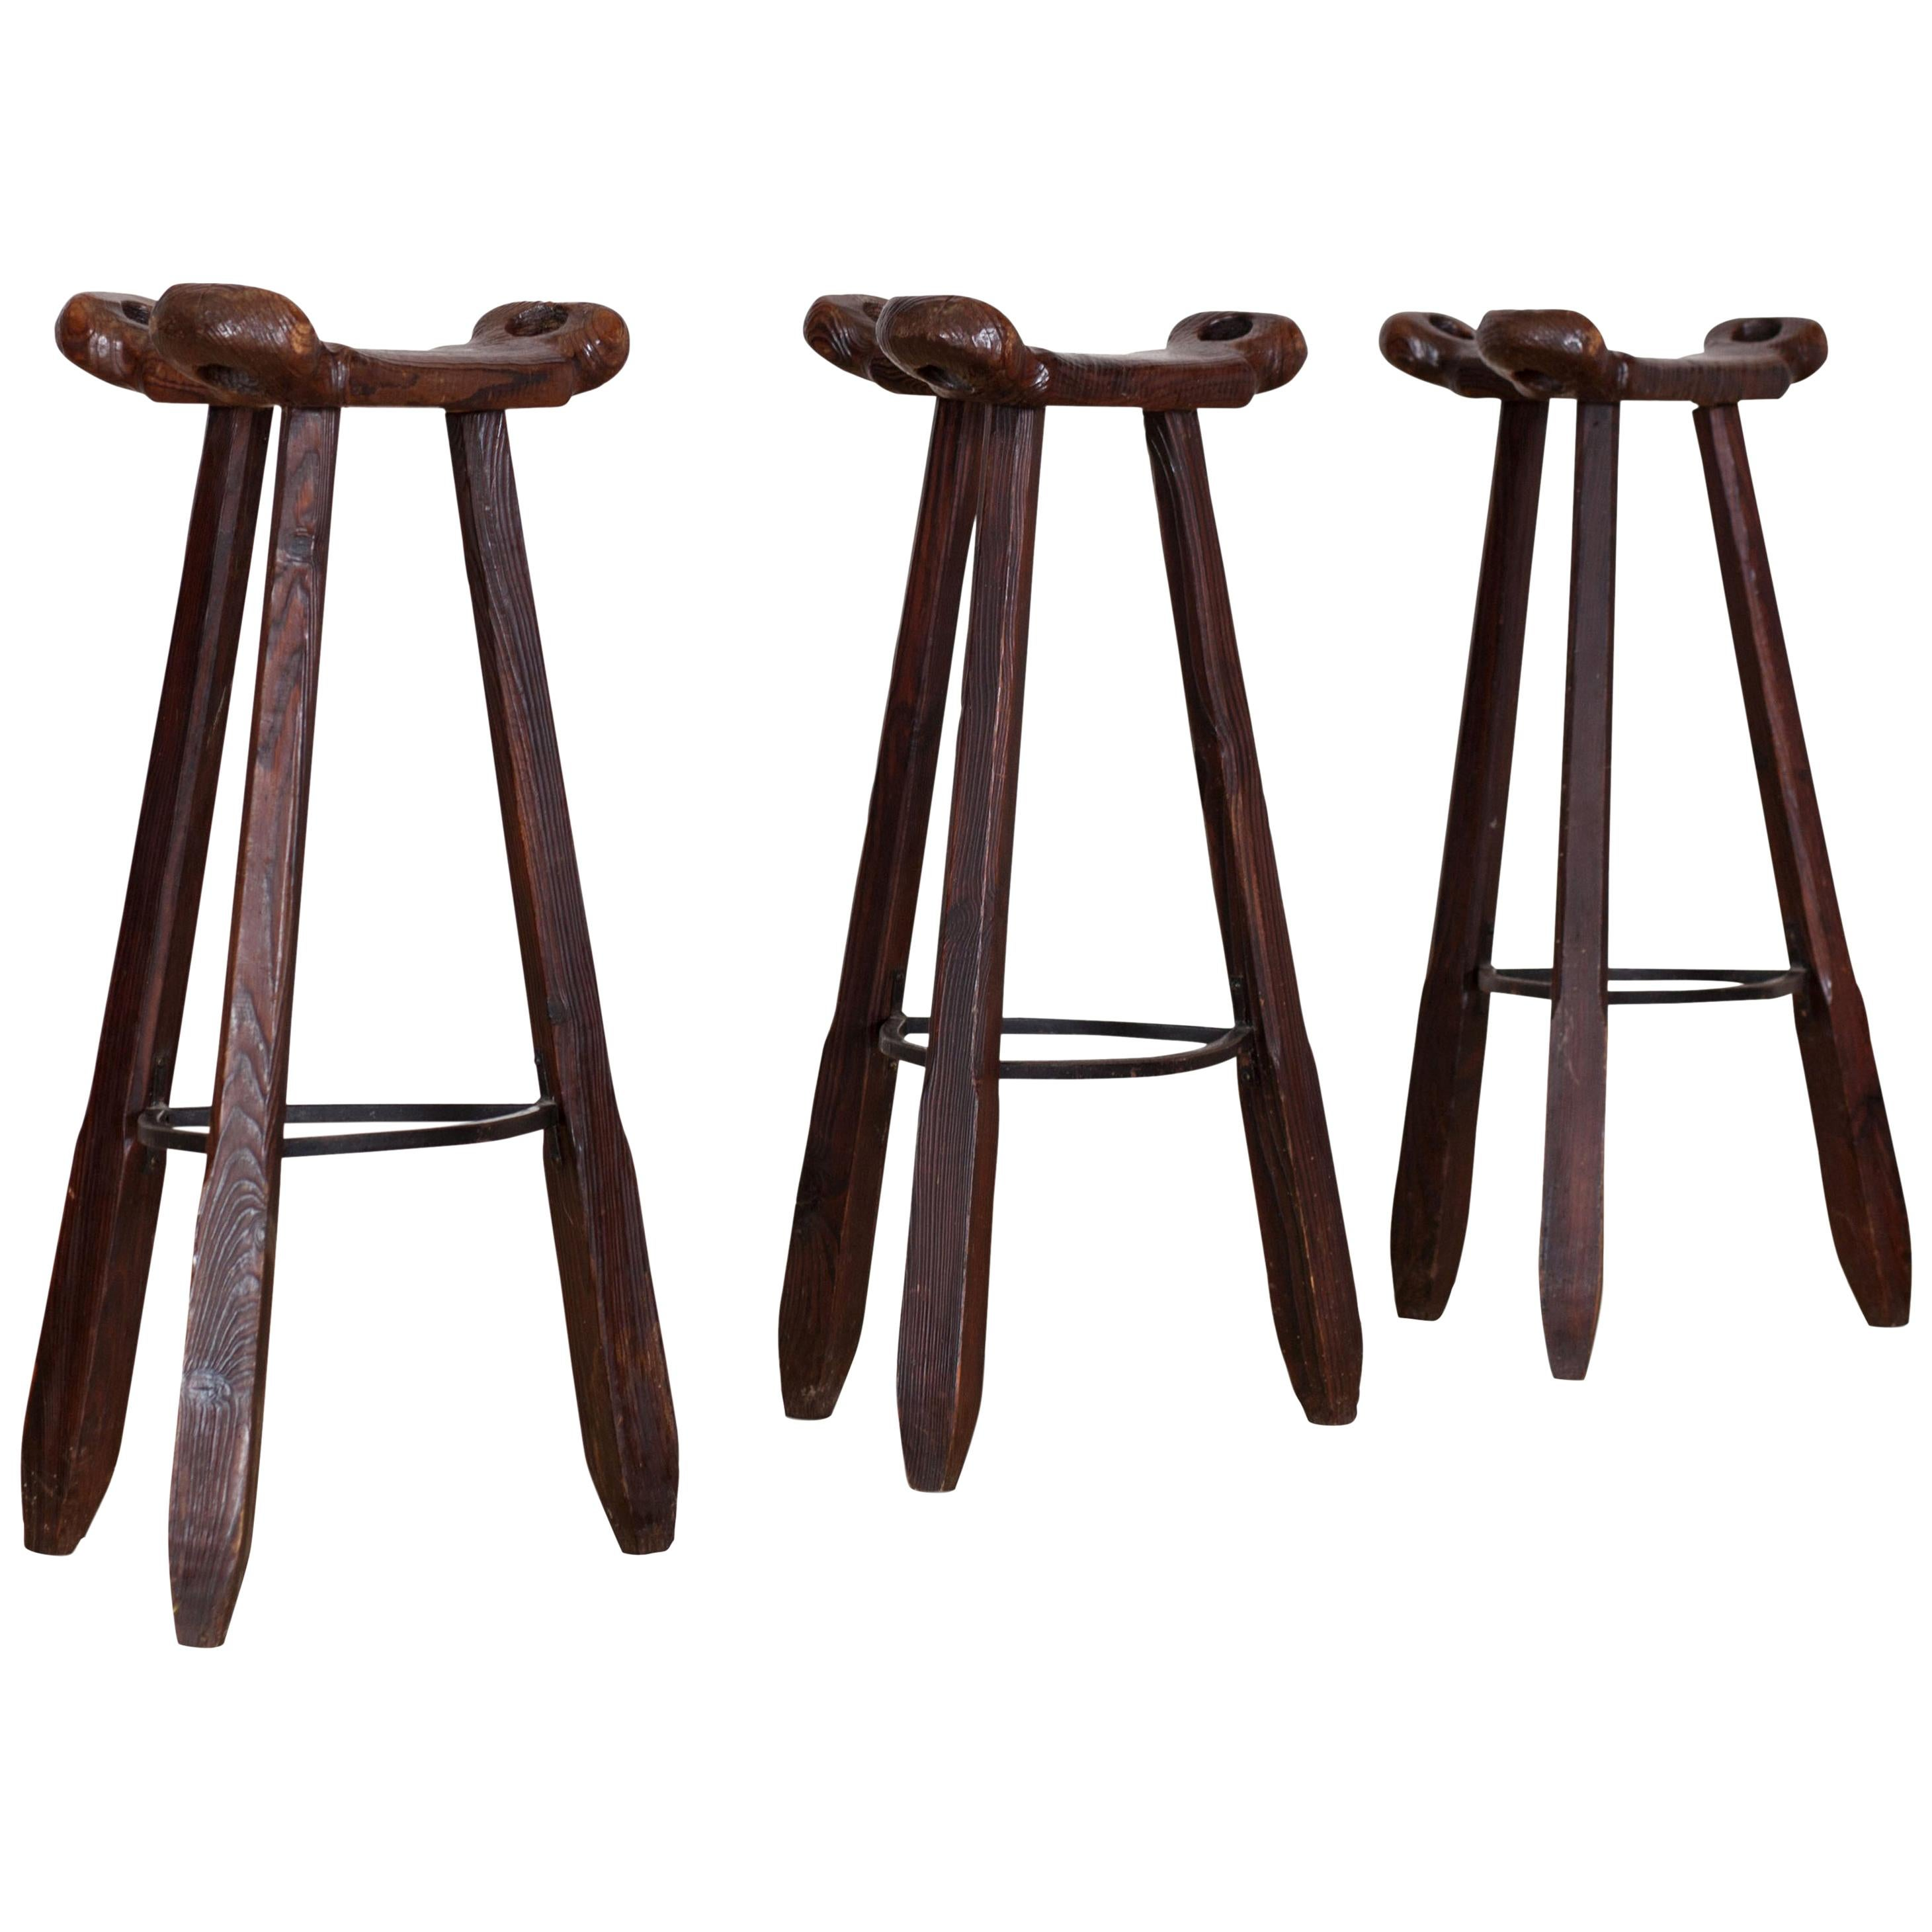 Brutalist Bar Stools in the Style of the Marbella Stool by Sergio Rodrigues